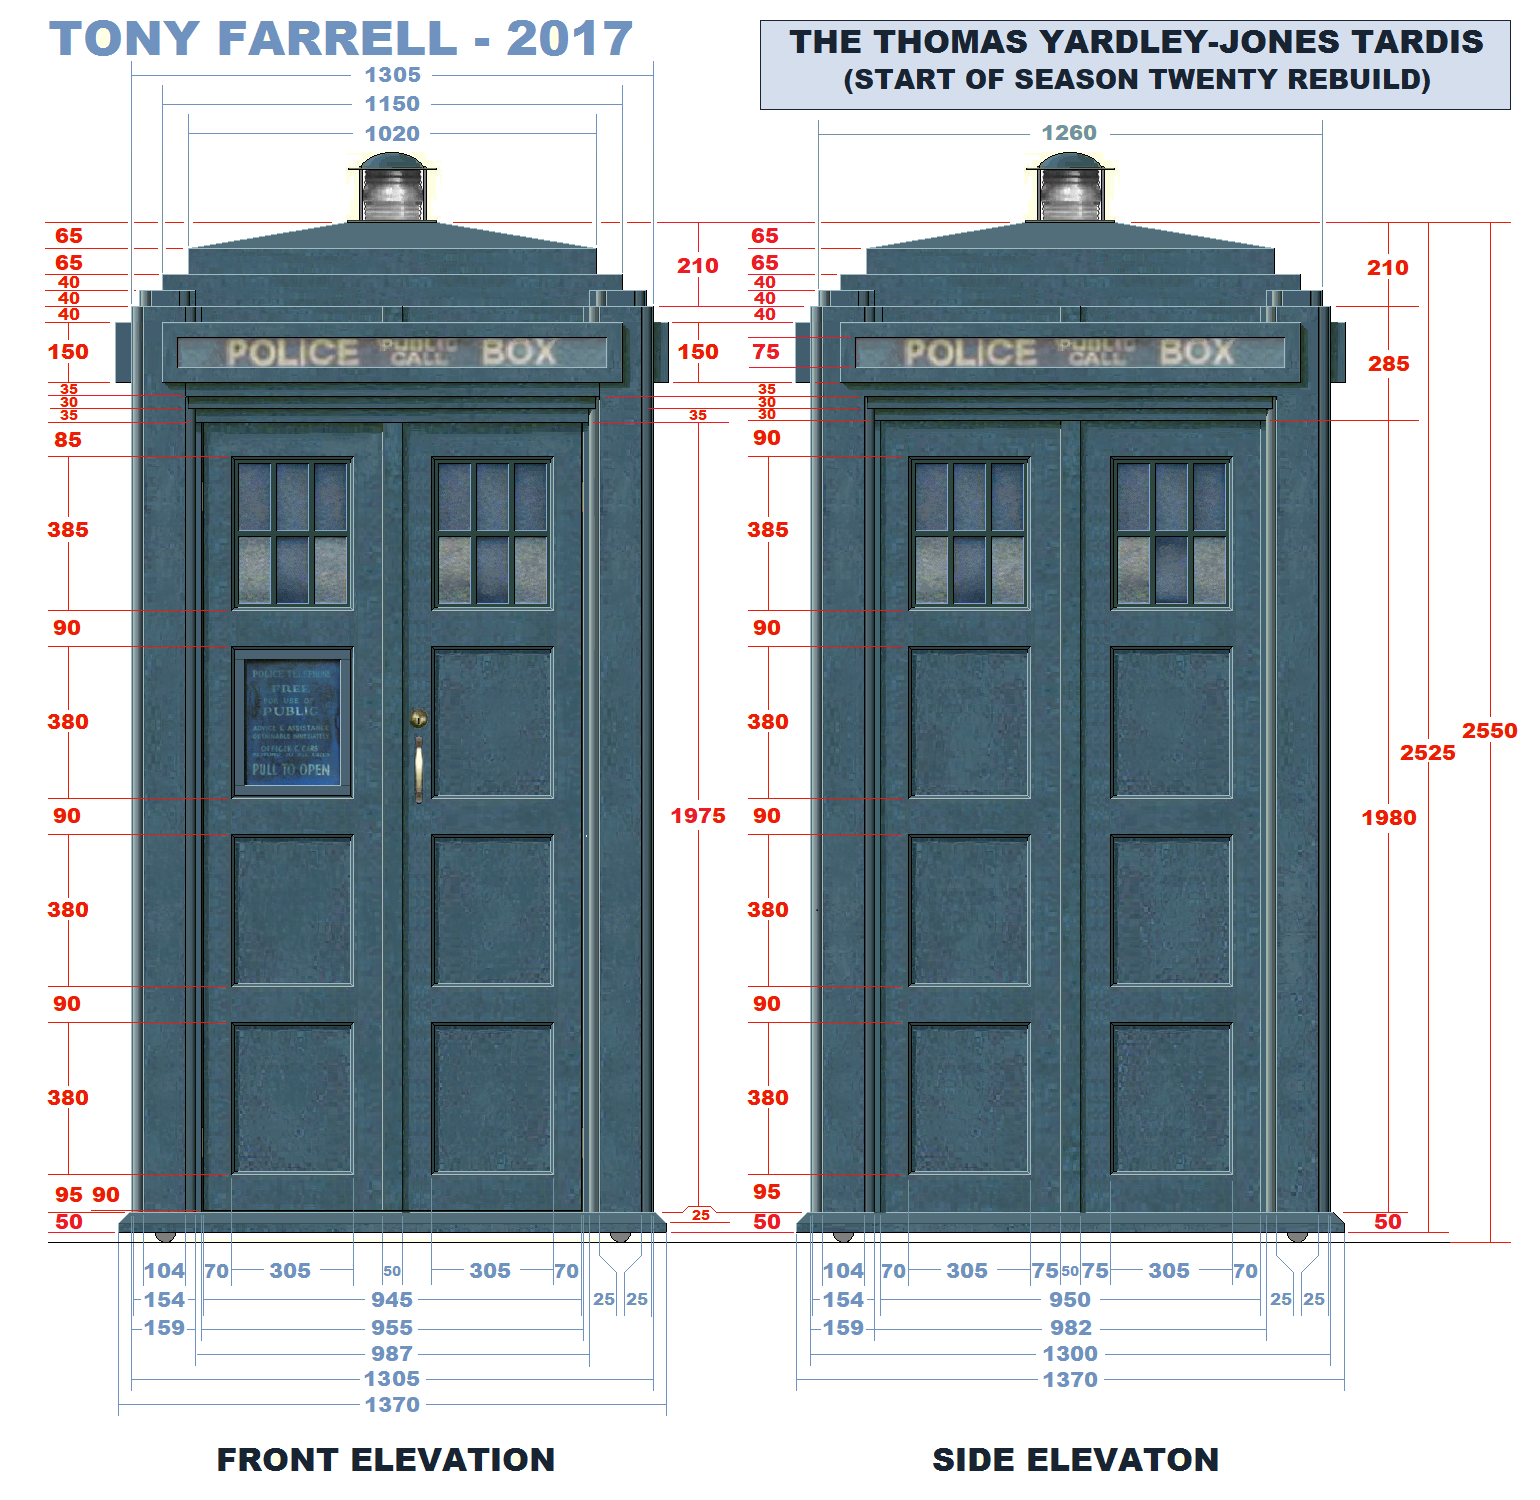 TY-J Season 20 (Front and Sides with dimensions).png